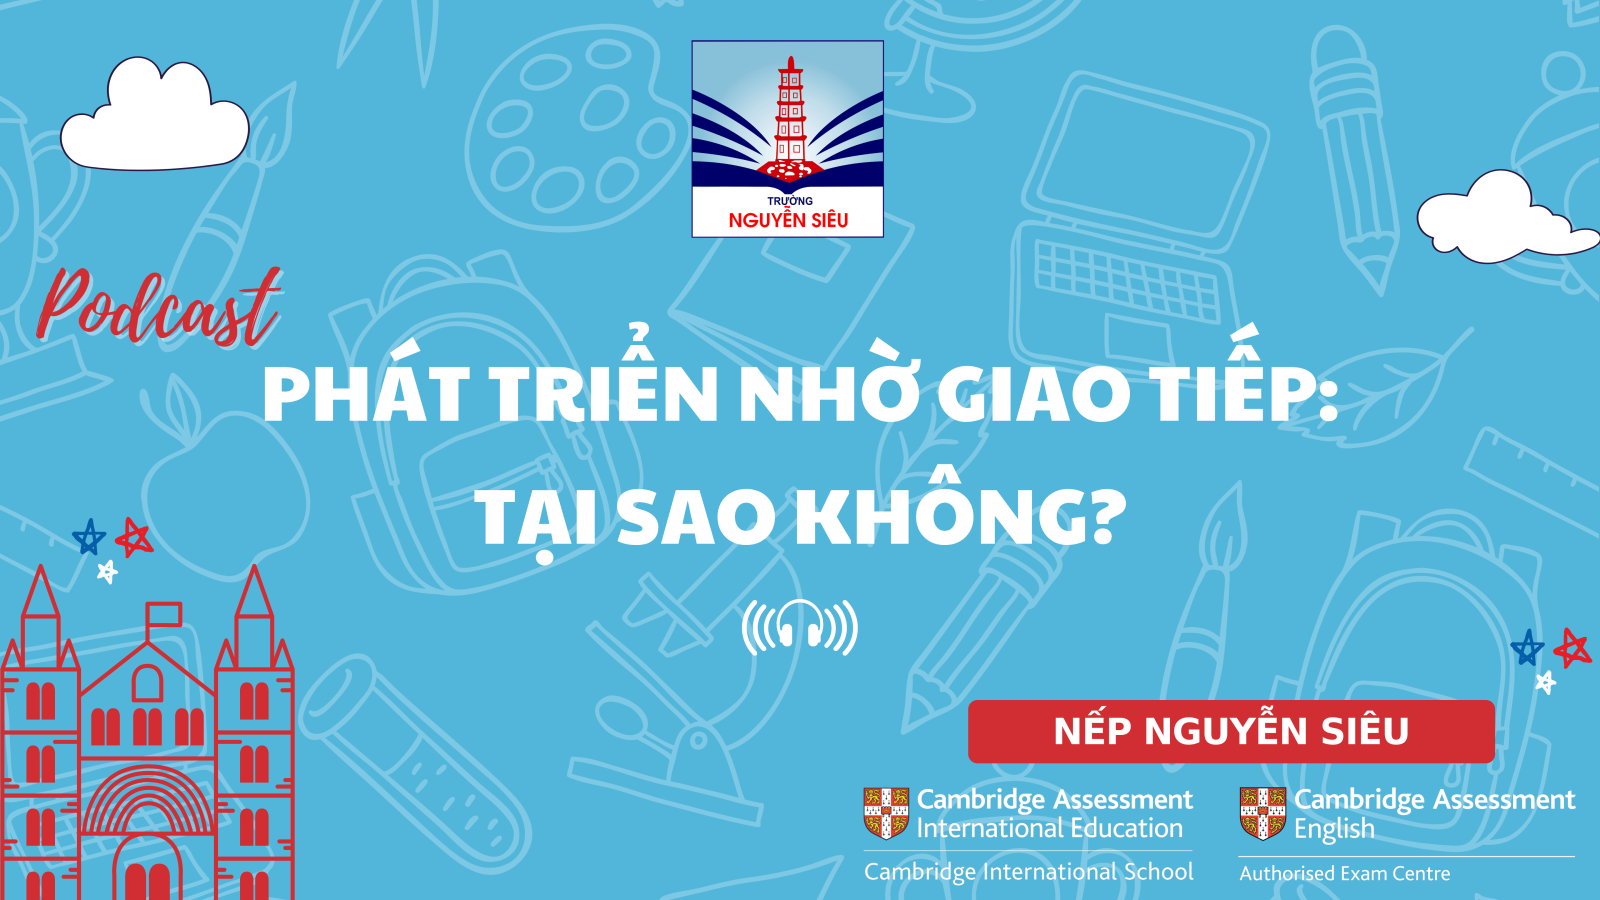 The First Podcast of Nguyen Sieu School Officially Released